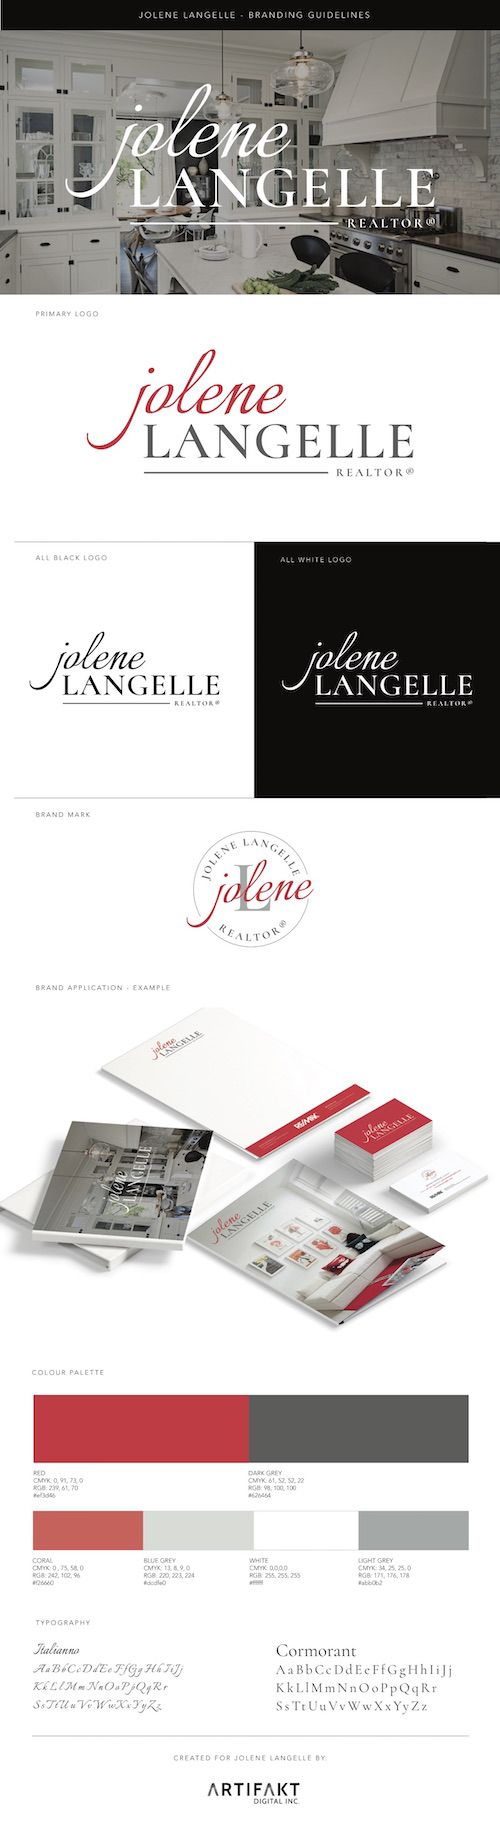 The completed branding guidelines we did for Jolene Langelle; a real estate agent in Edmonton, AB.